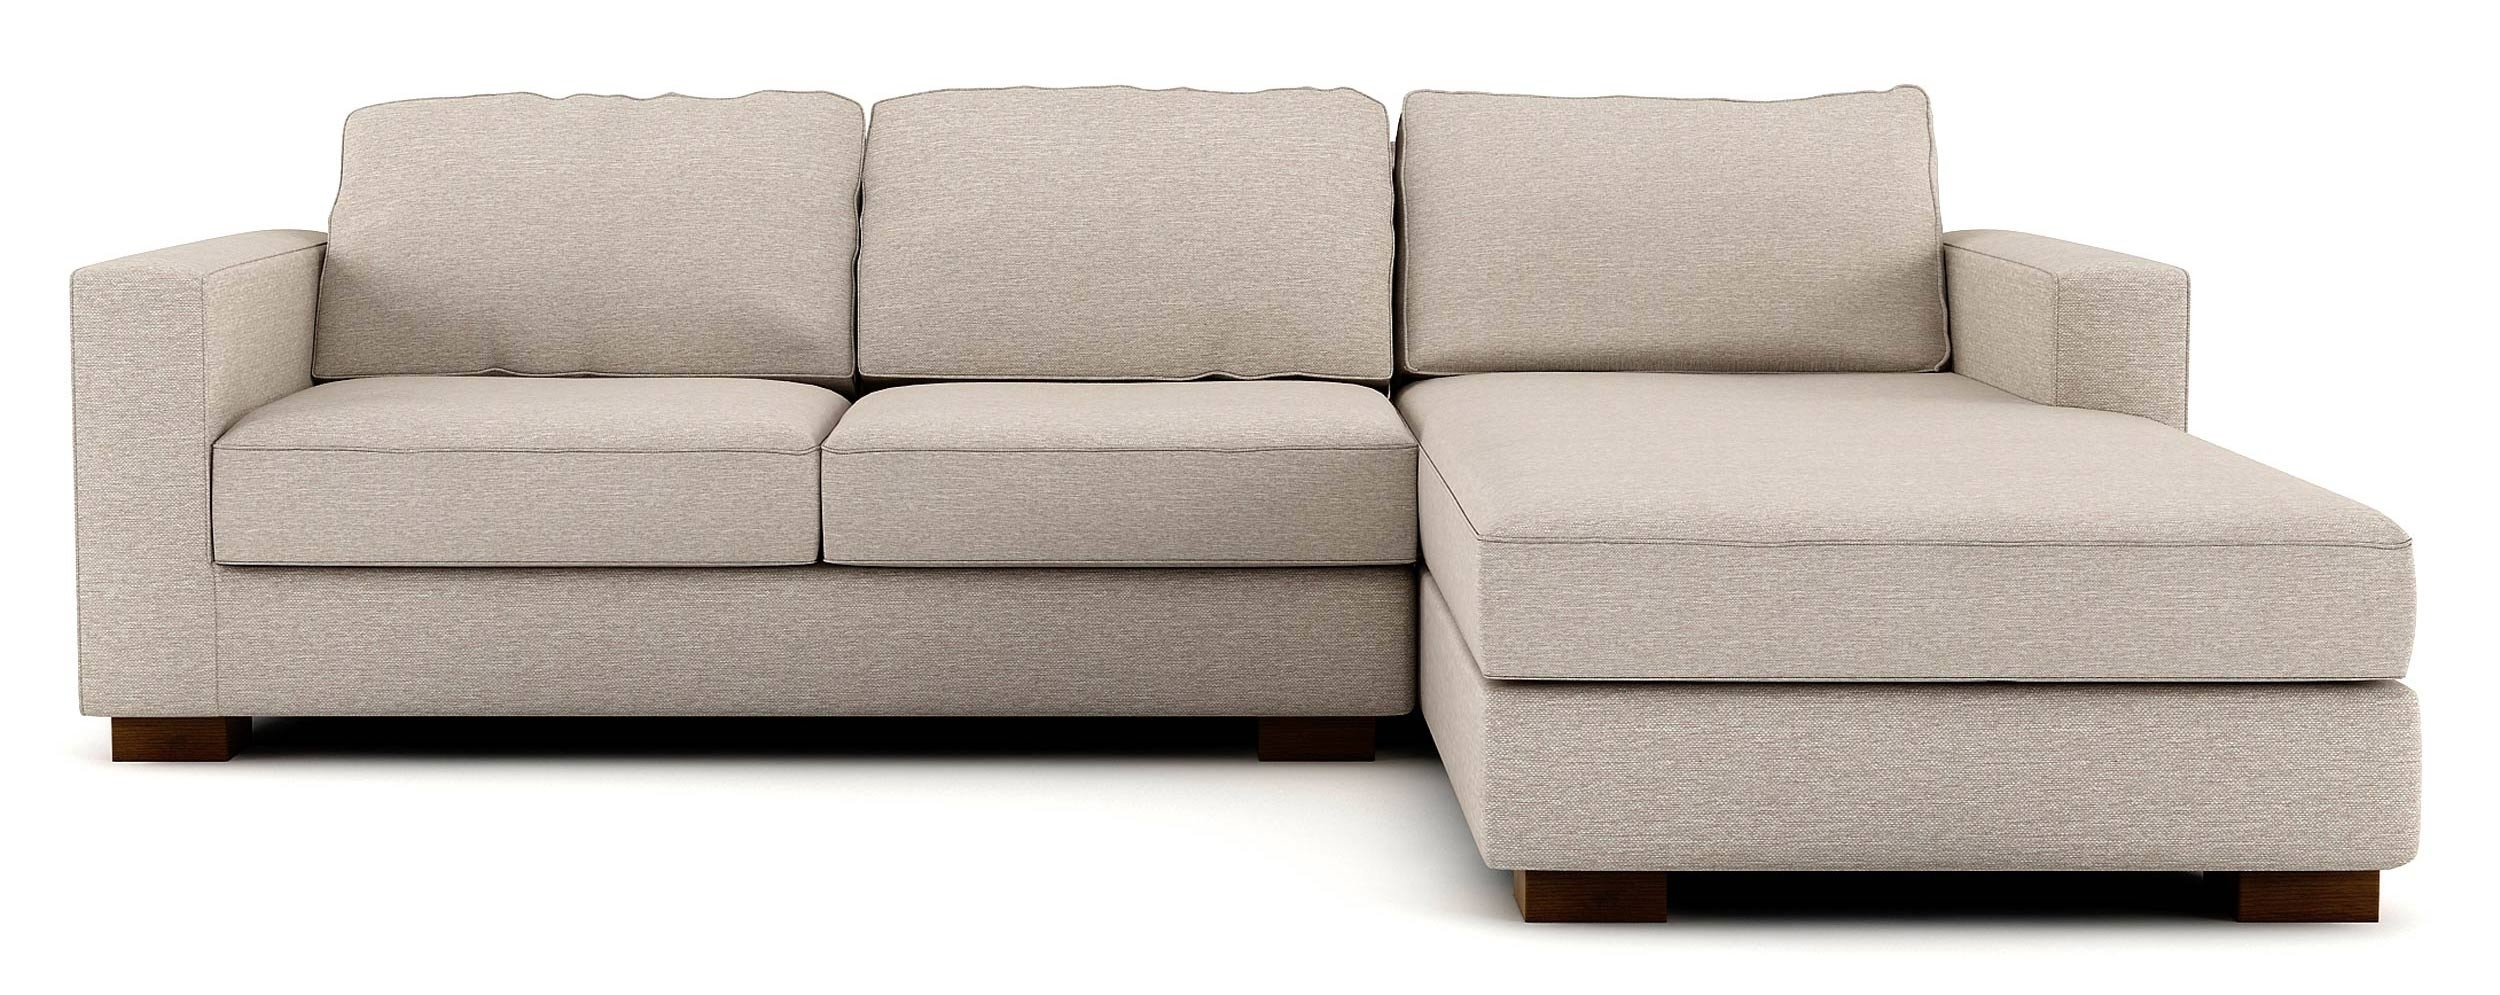 Eco Friendly Sectional Sofa, Non Toxic Sectionals – Stem Regarding Collins Sofa Sectionals With Reversible Chaise (View 19 of 25)